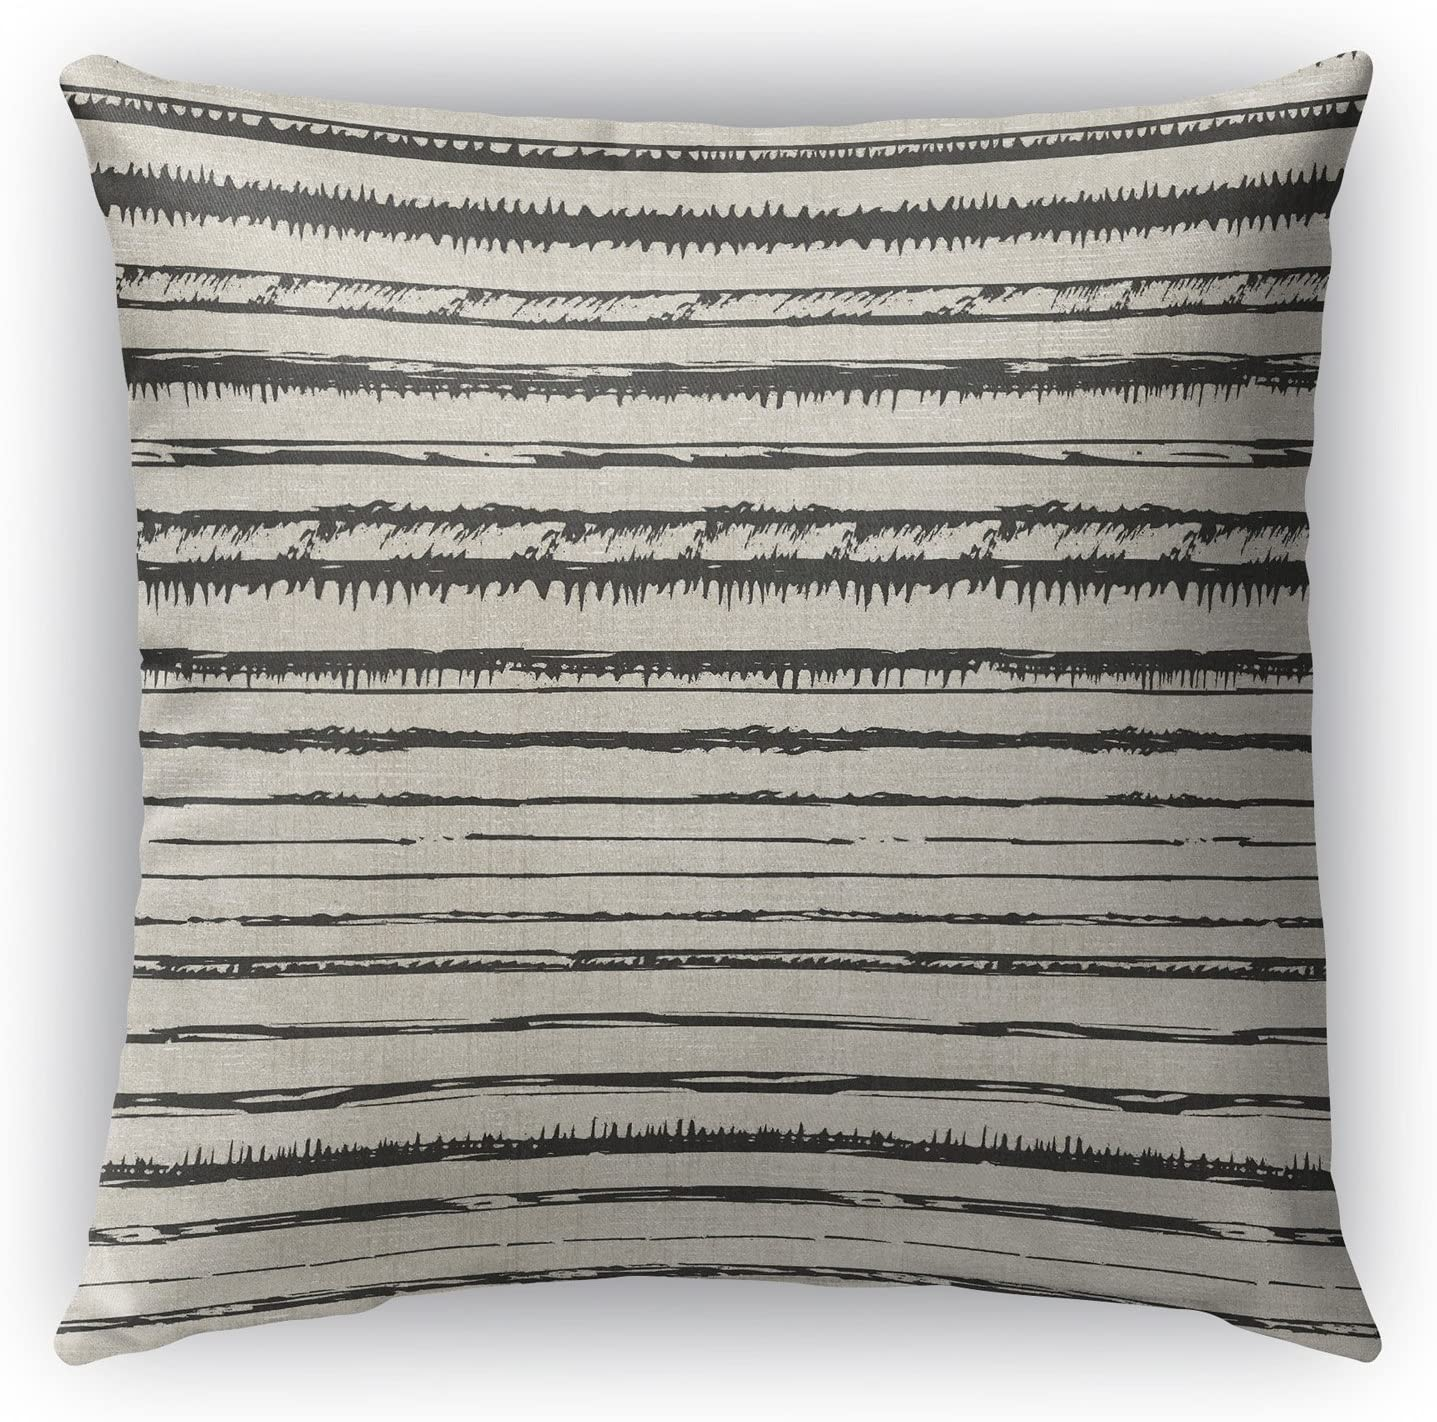 Beige//Black TELAVC1490OD26 KAVKA Designs Bolzano Indoor-Outdoor Pillow, - Encompass Collection Size: 26X26X6 -